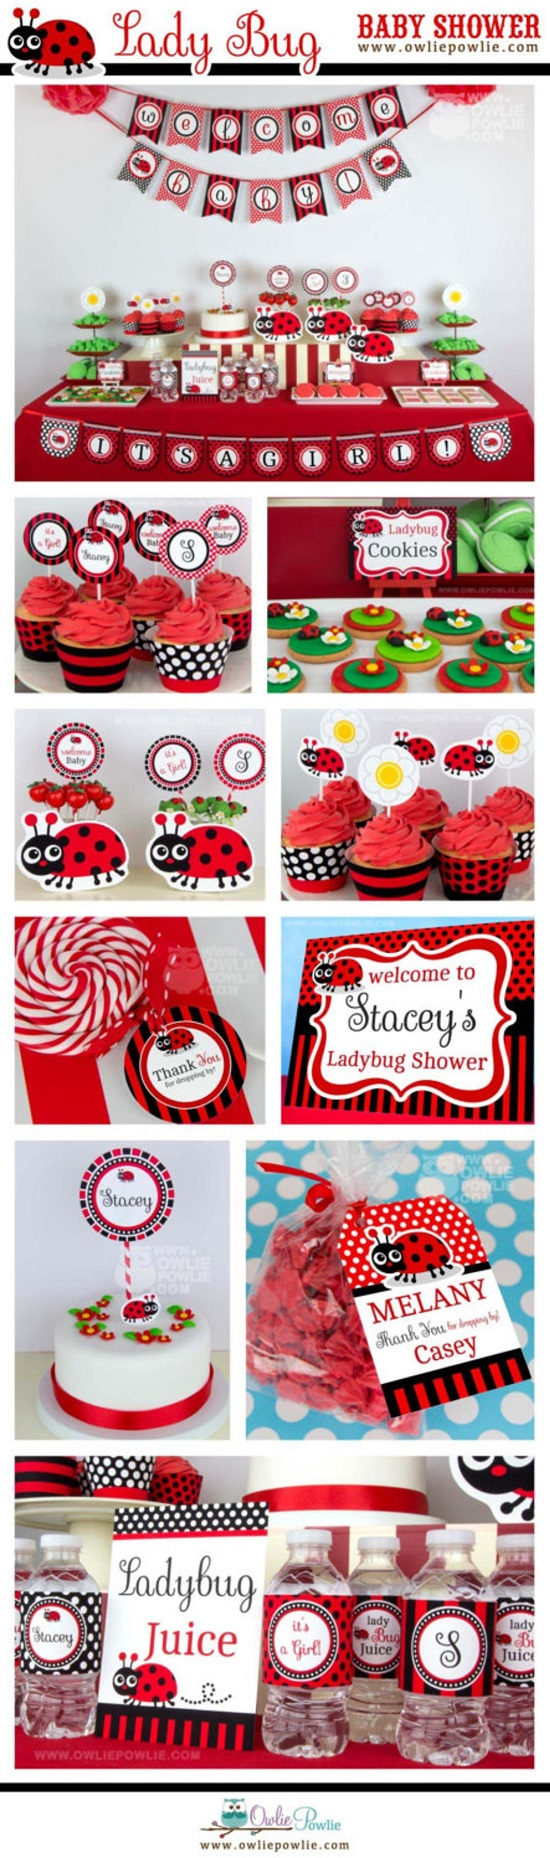 ladybug themed baby shower printable pack